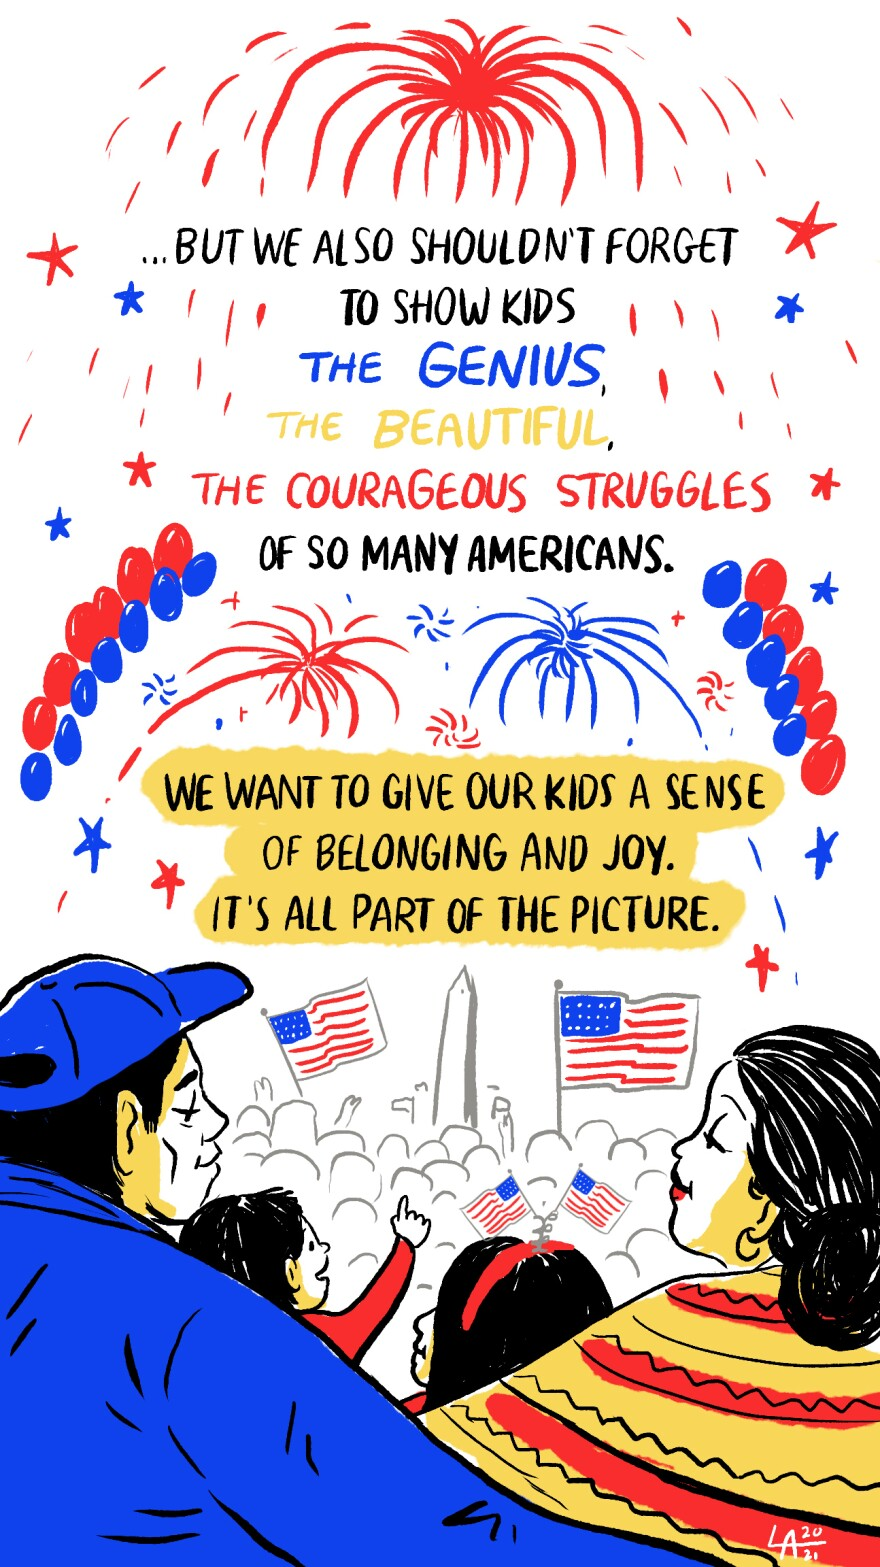 But we also shouldn't forget to show kids the genius, the beautiful, the courageous struggles of so many Americans.